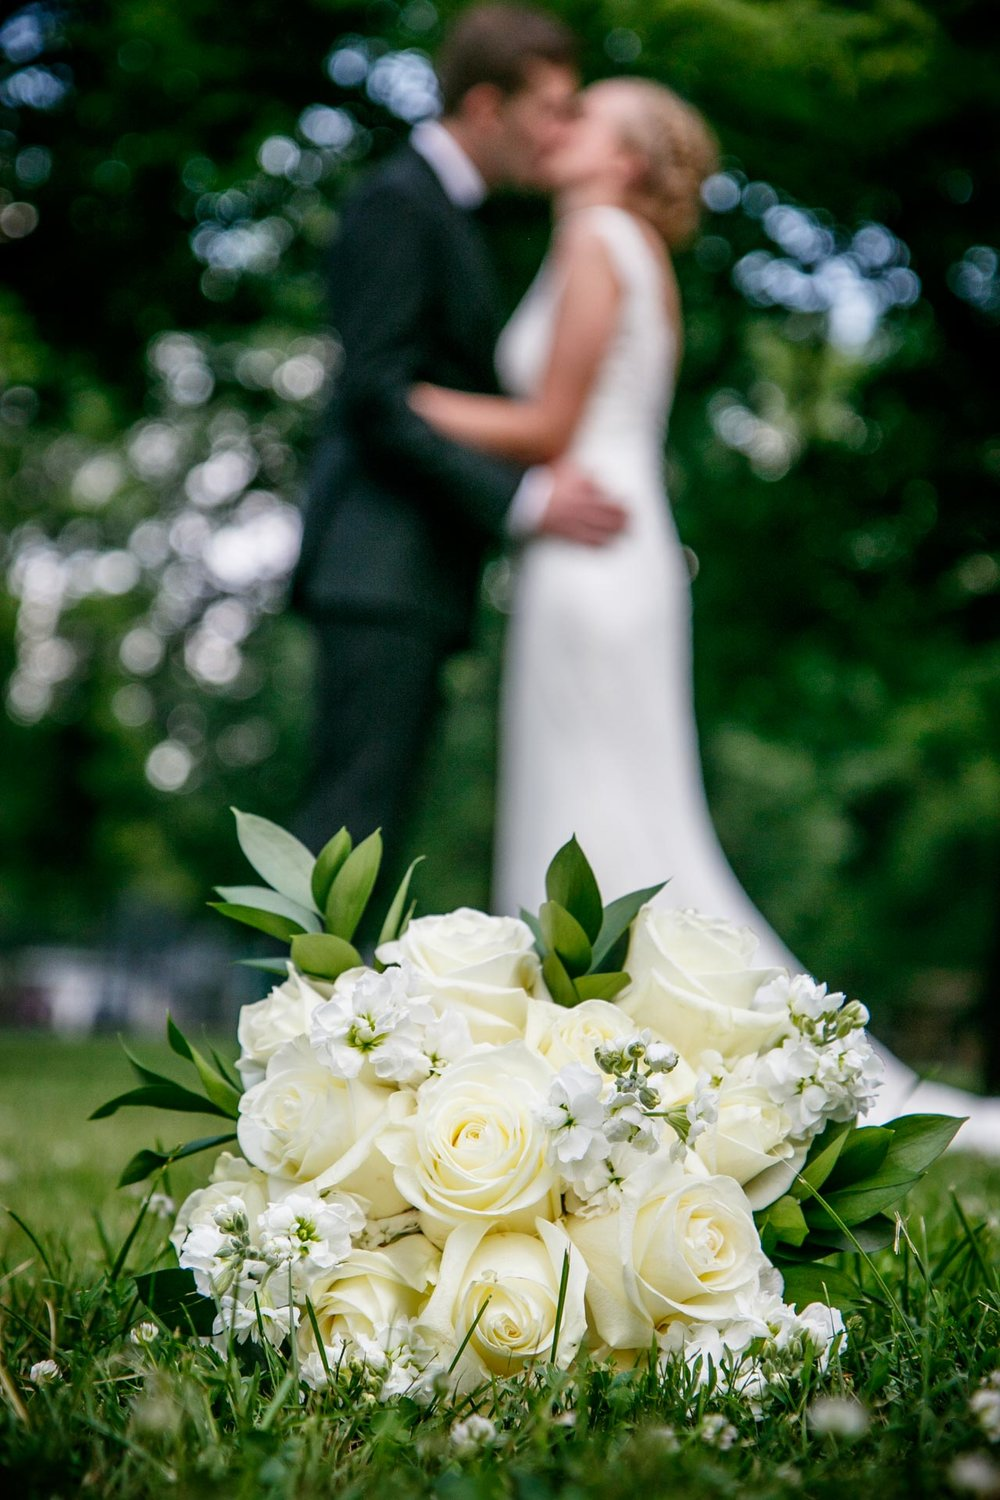 smith-park-menasha-wedding-adam-shea-photography-green-bay-appleton-neenah-photographer-28.jpg